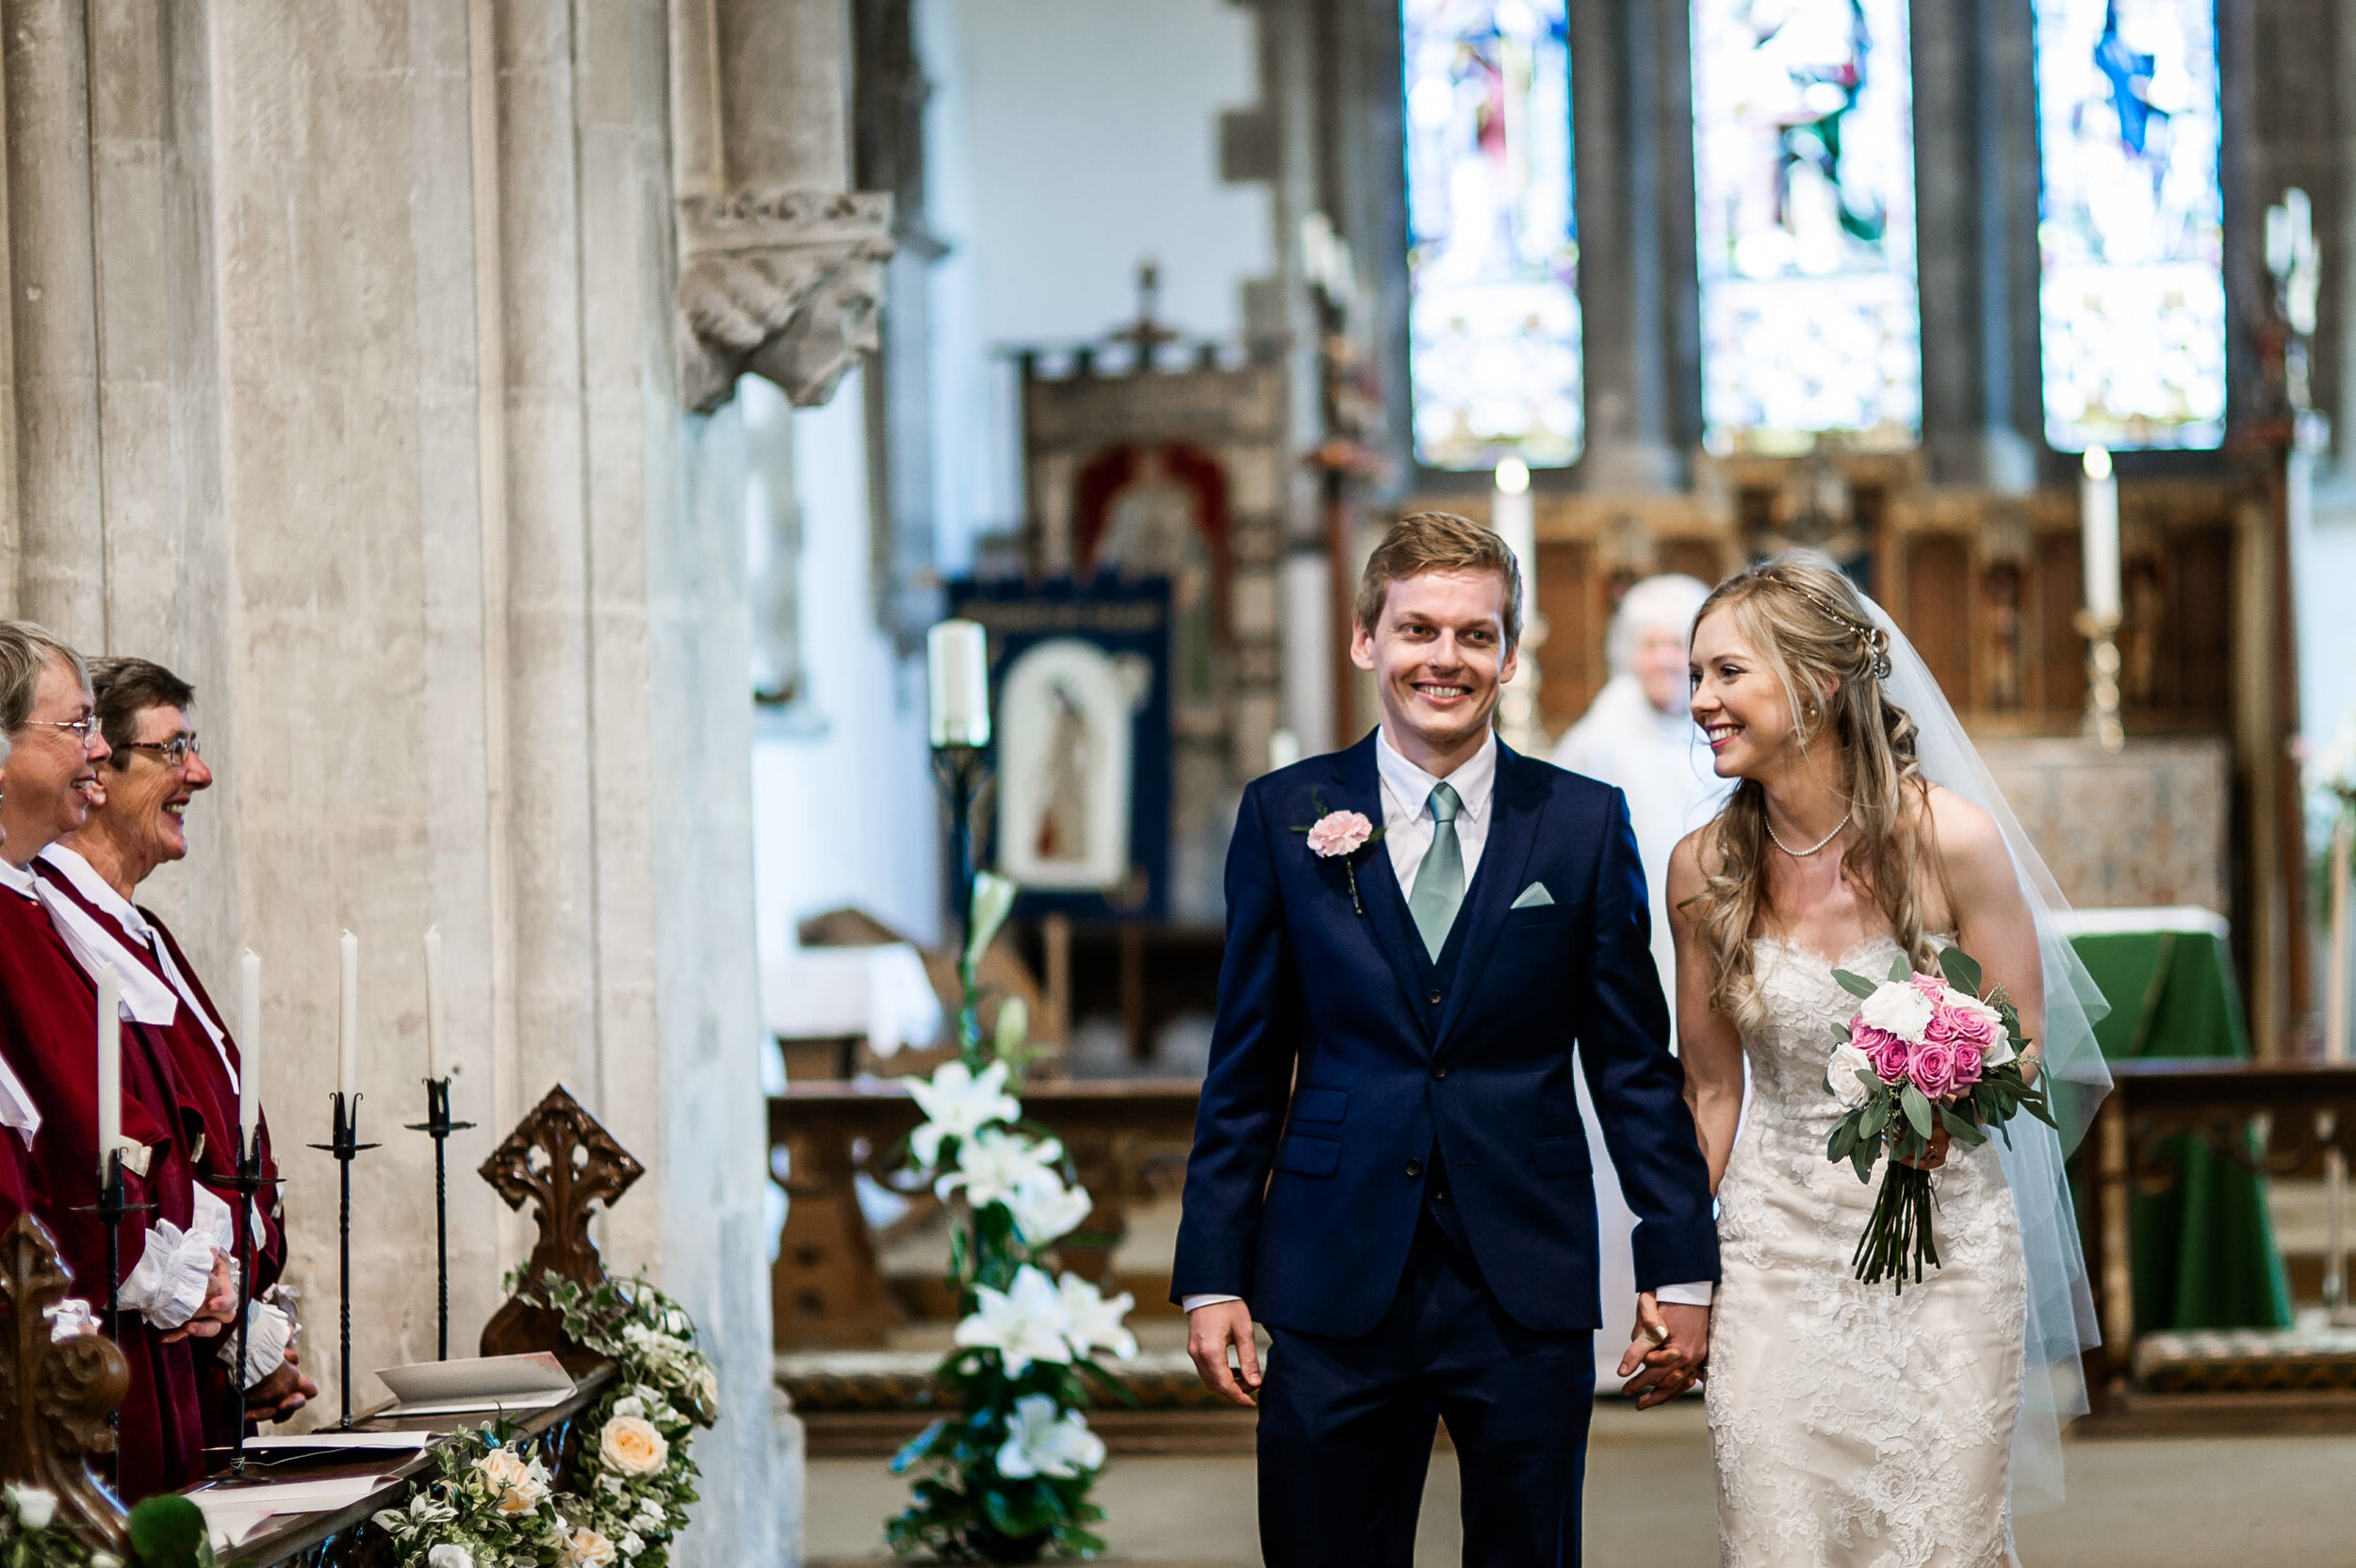 C&D - Wiltshire weddings (91 of 243).jpg